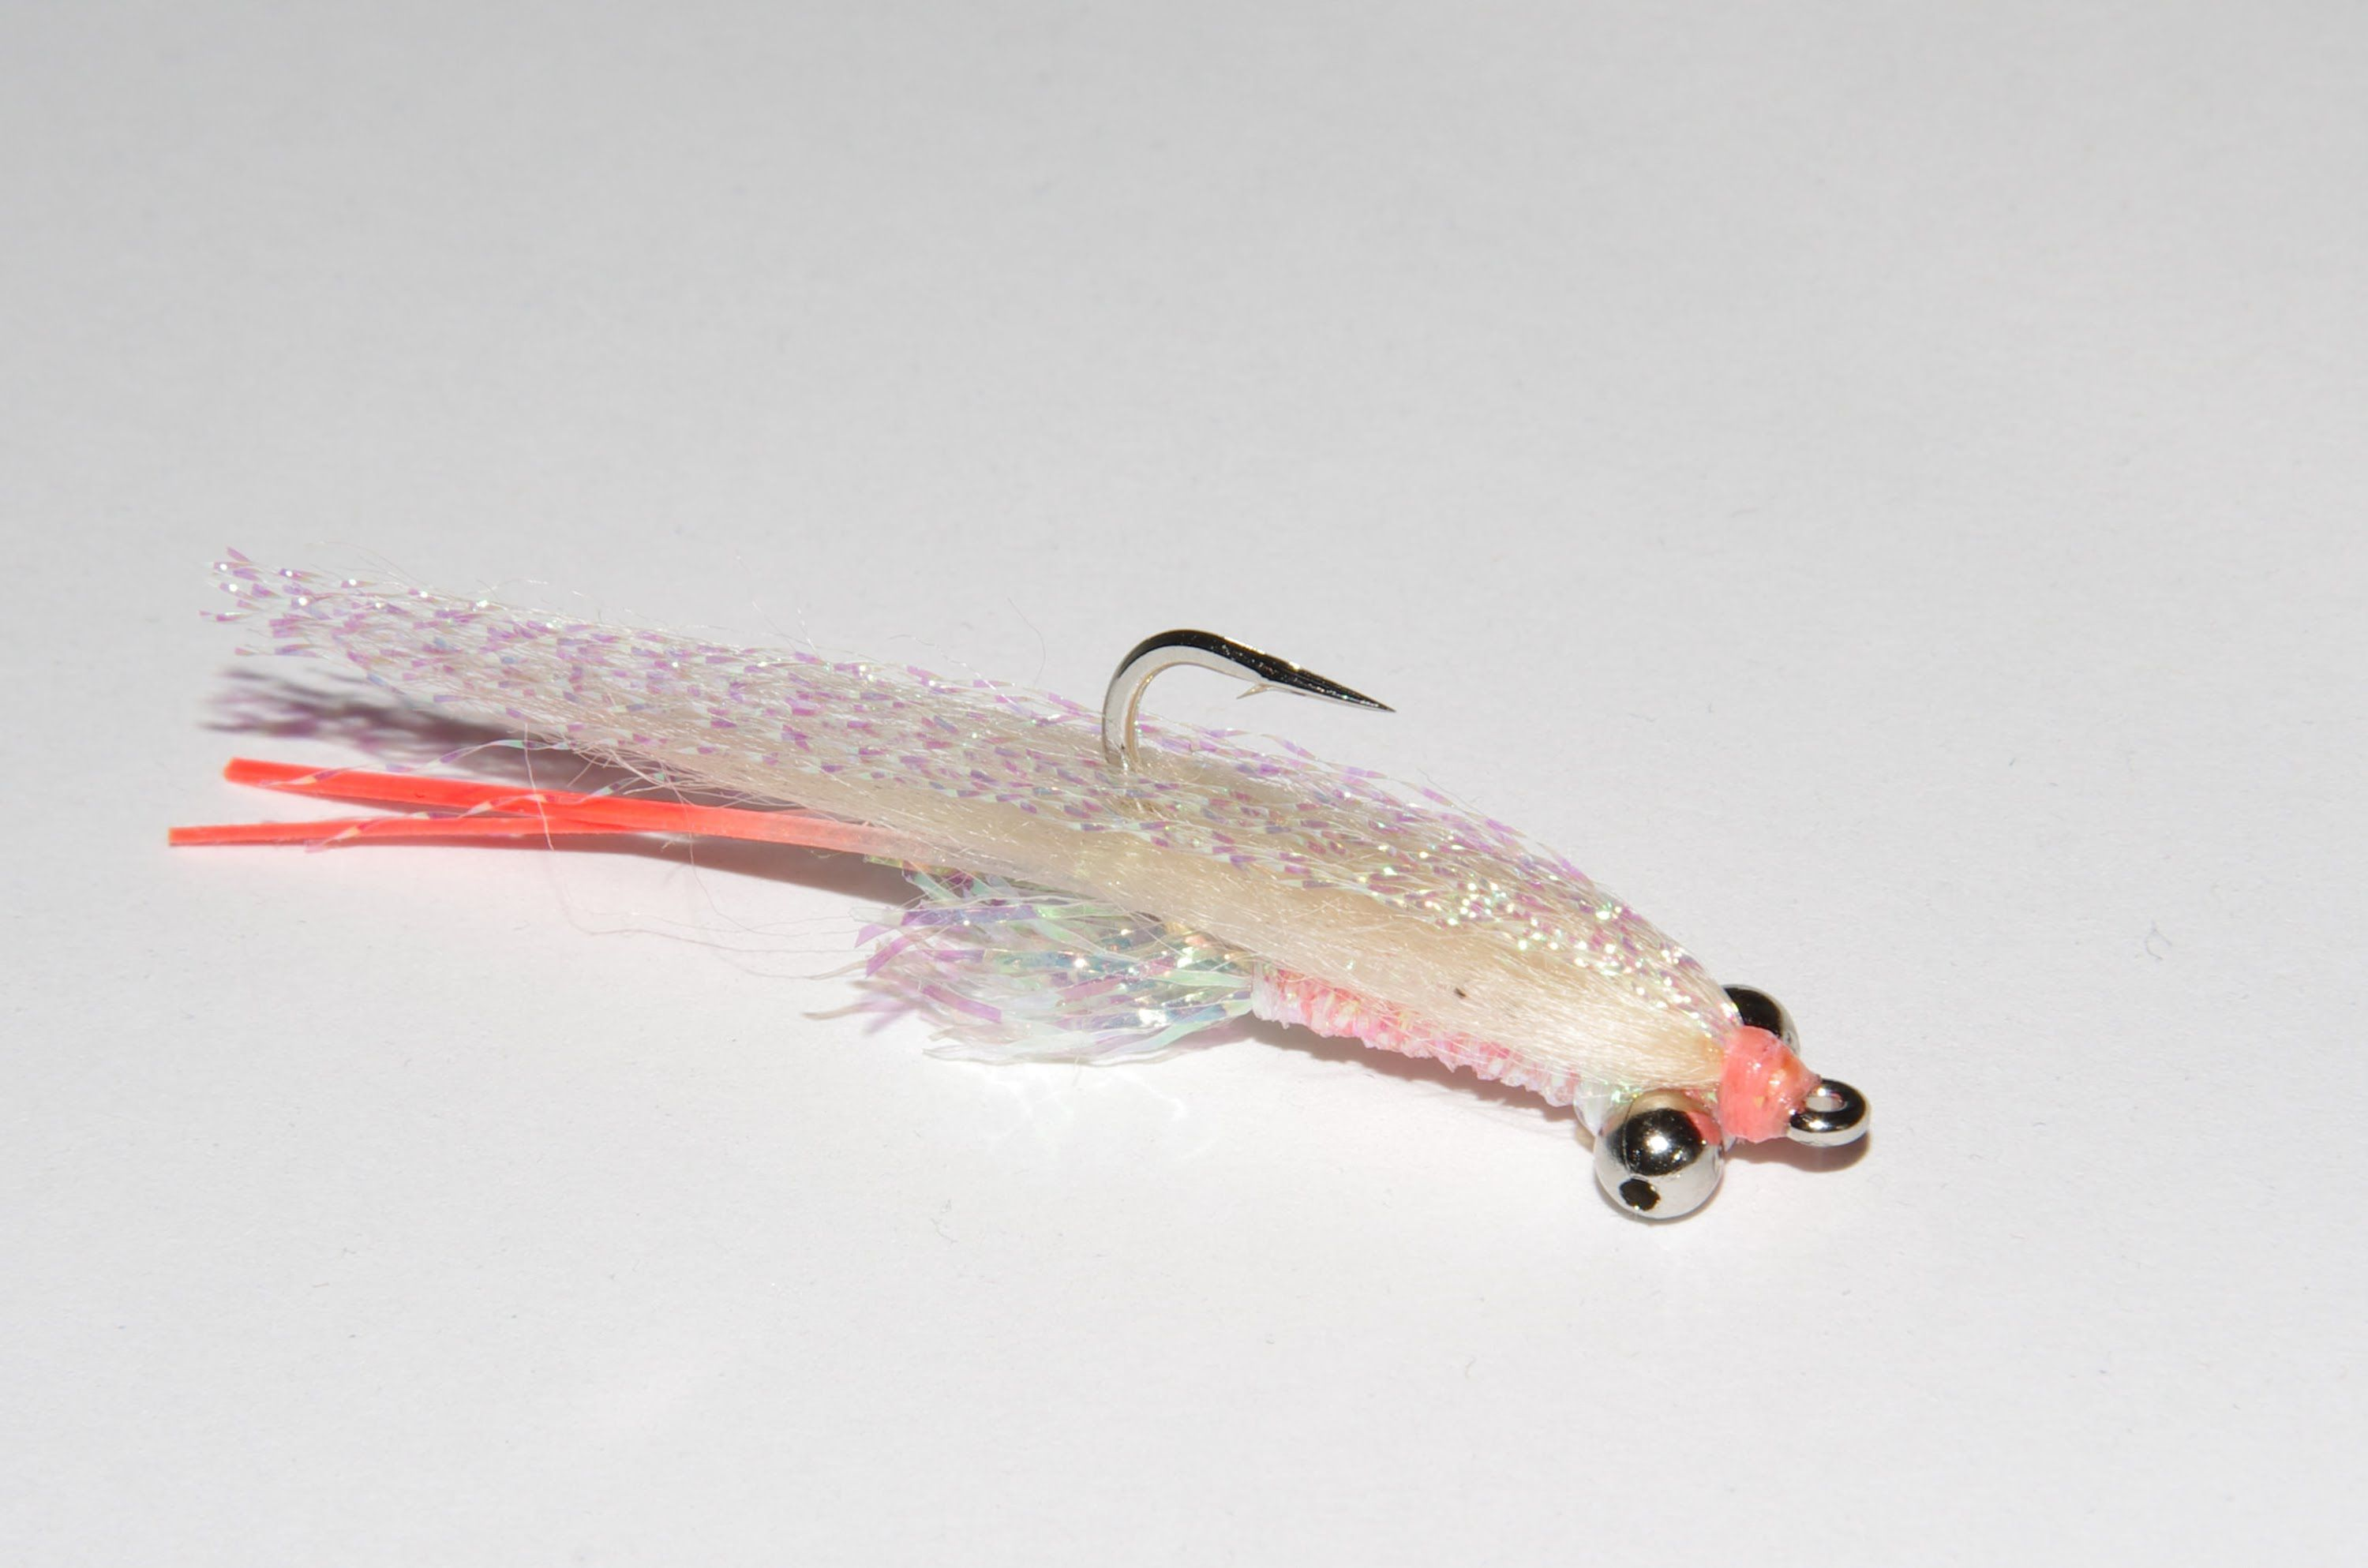 How to tie a hot legs or rubber legs gotcha bonefish fly for Bonefish fly fishing